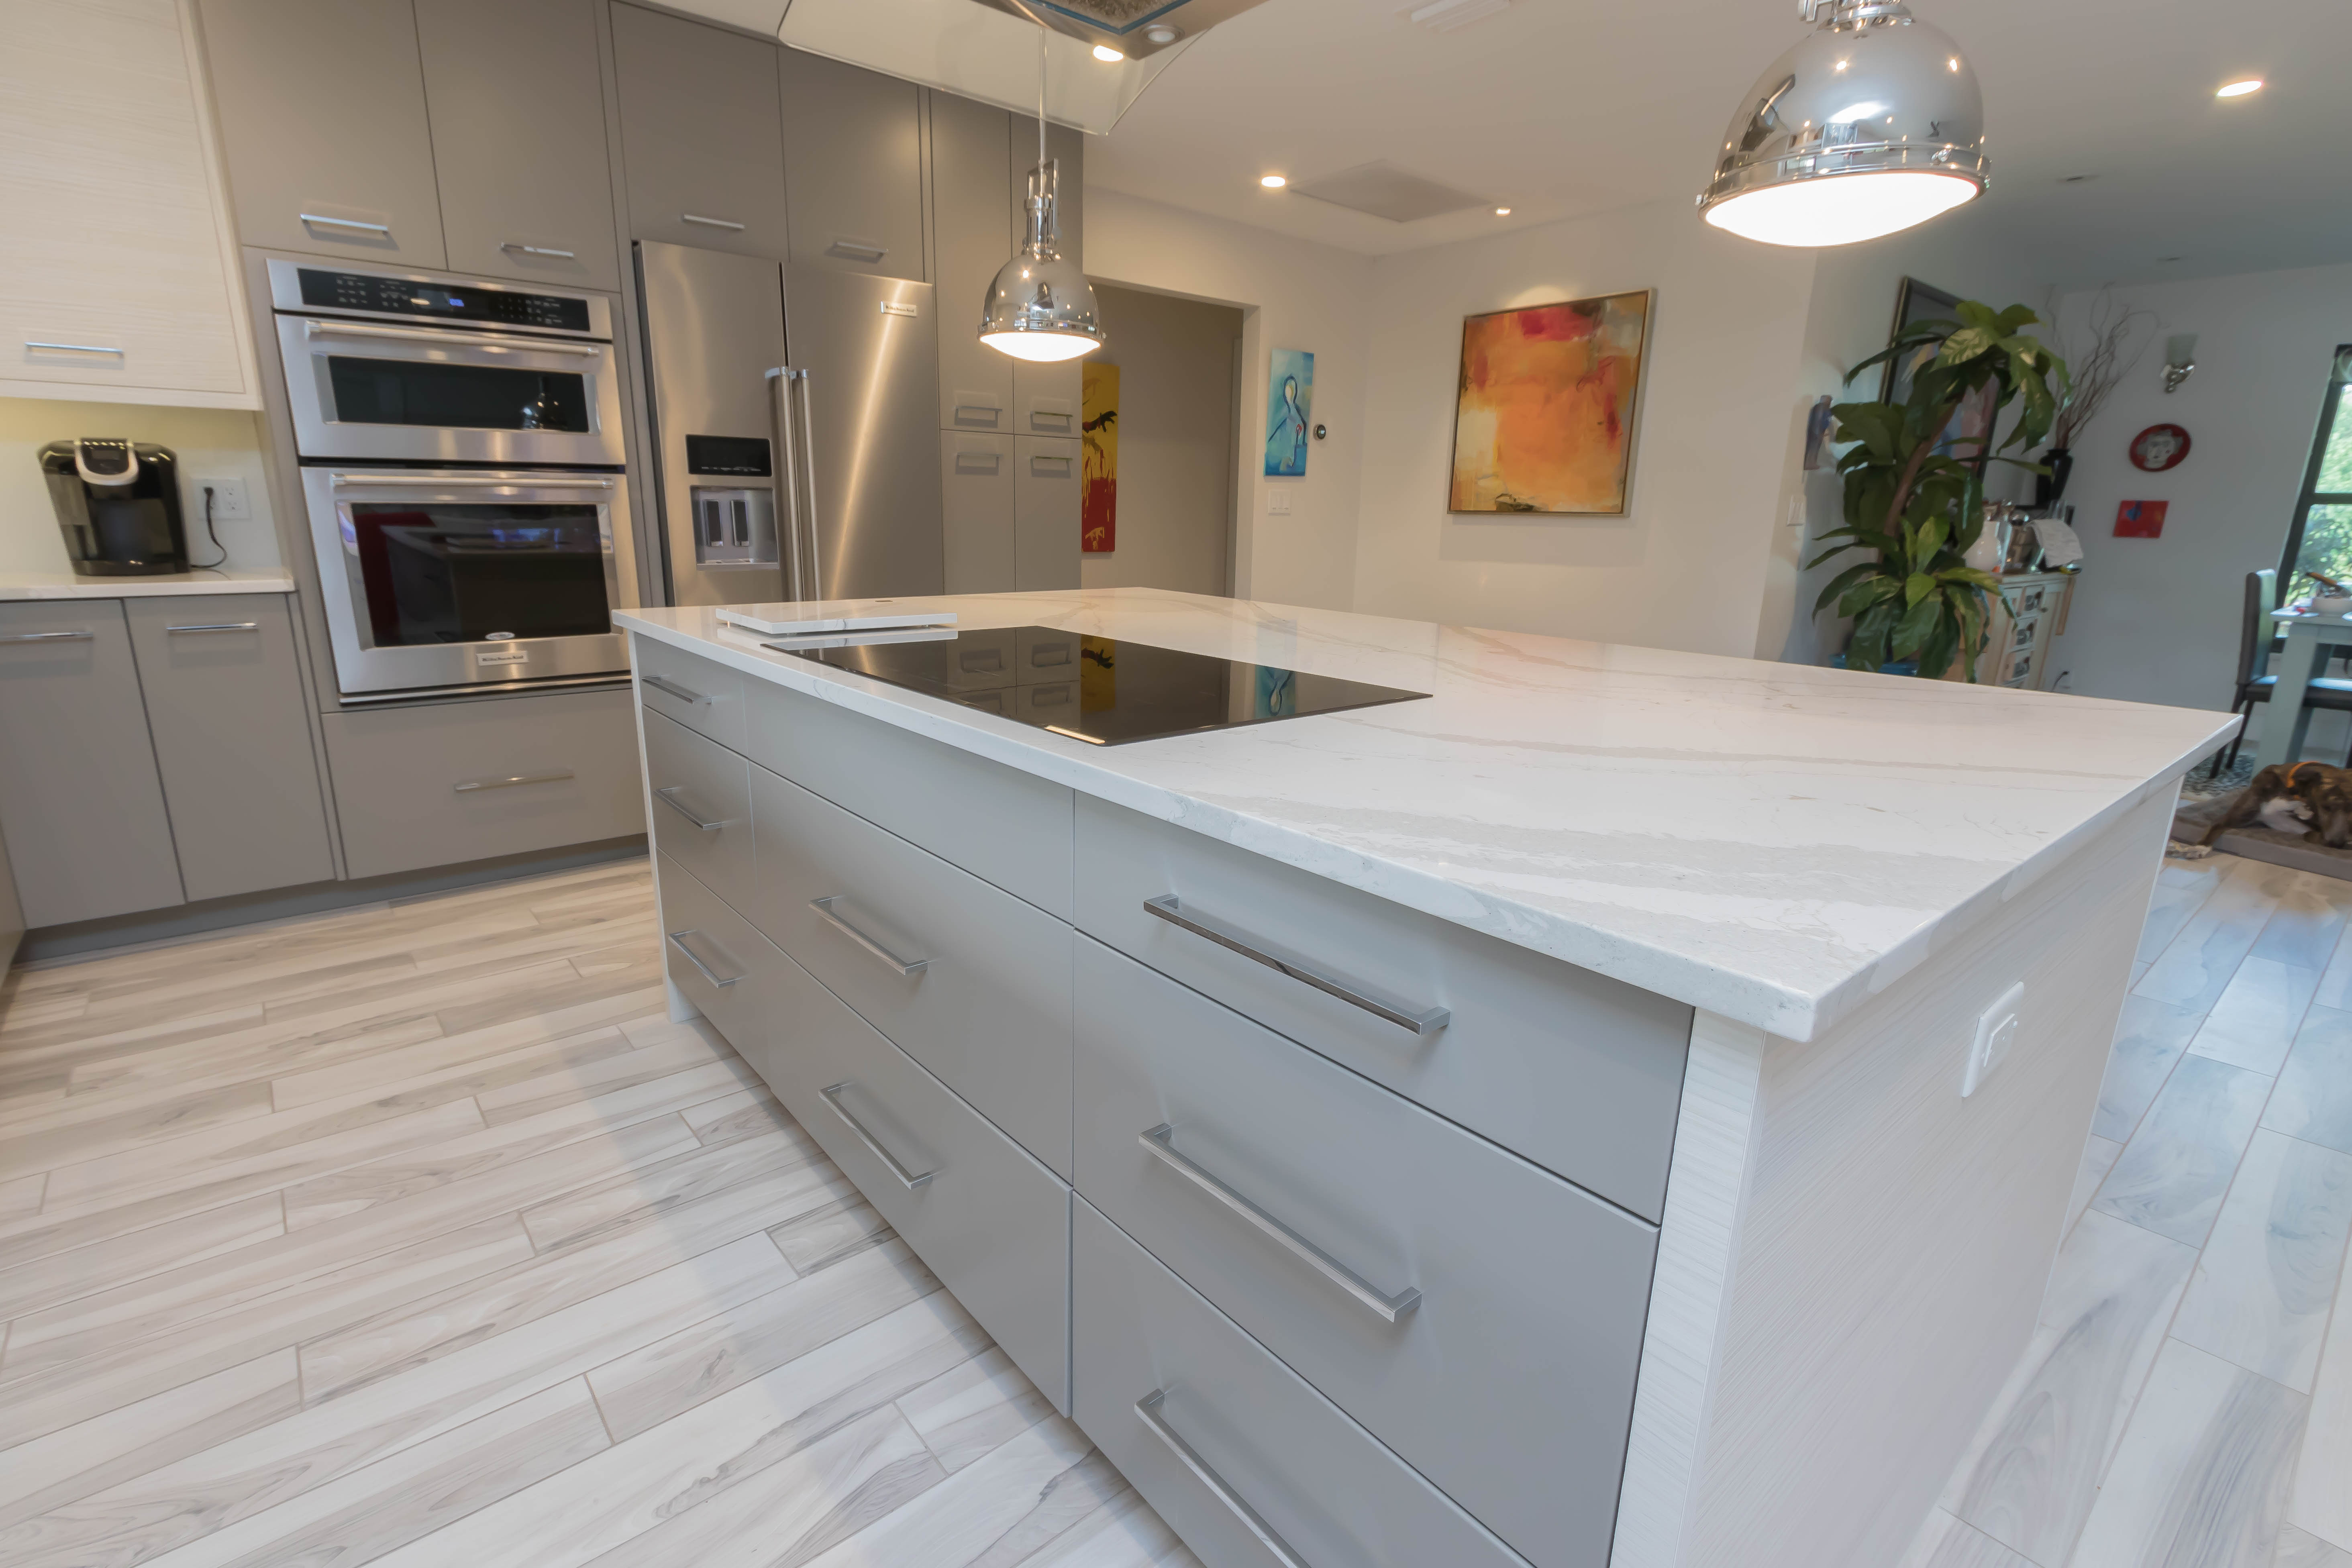 Belle Rio Cabinet Genies Kitchen And Bathroom Remodeling Cape Coral Fl